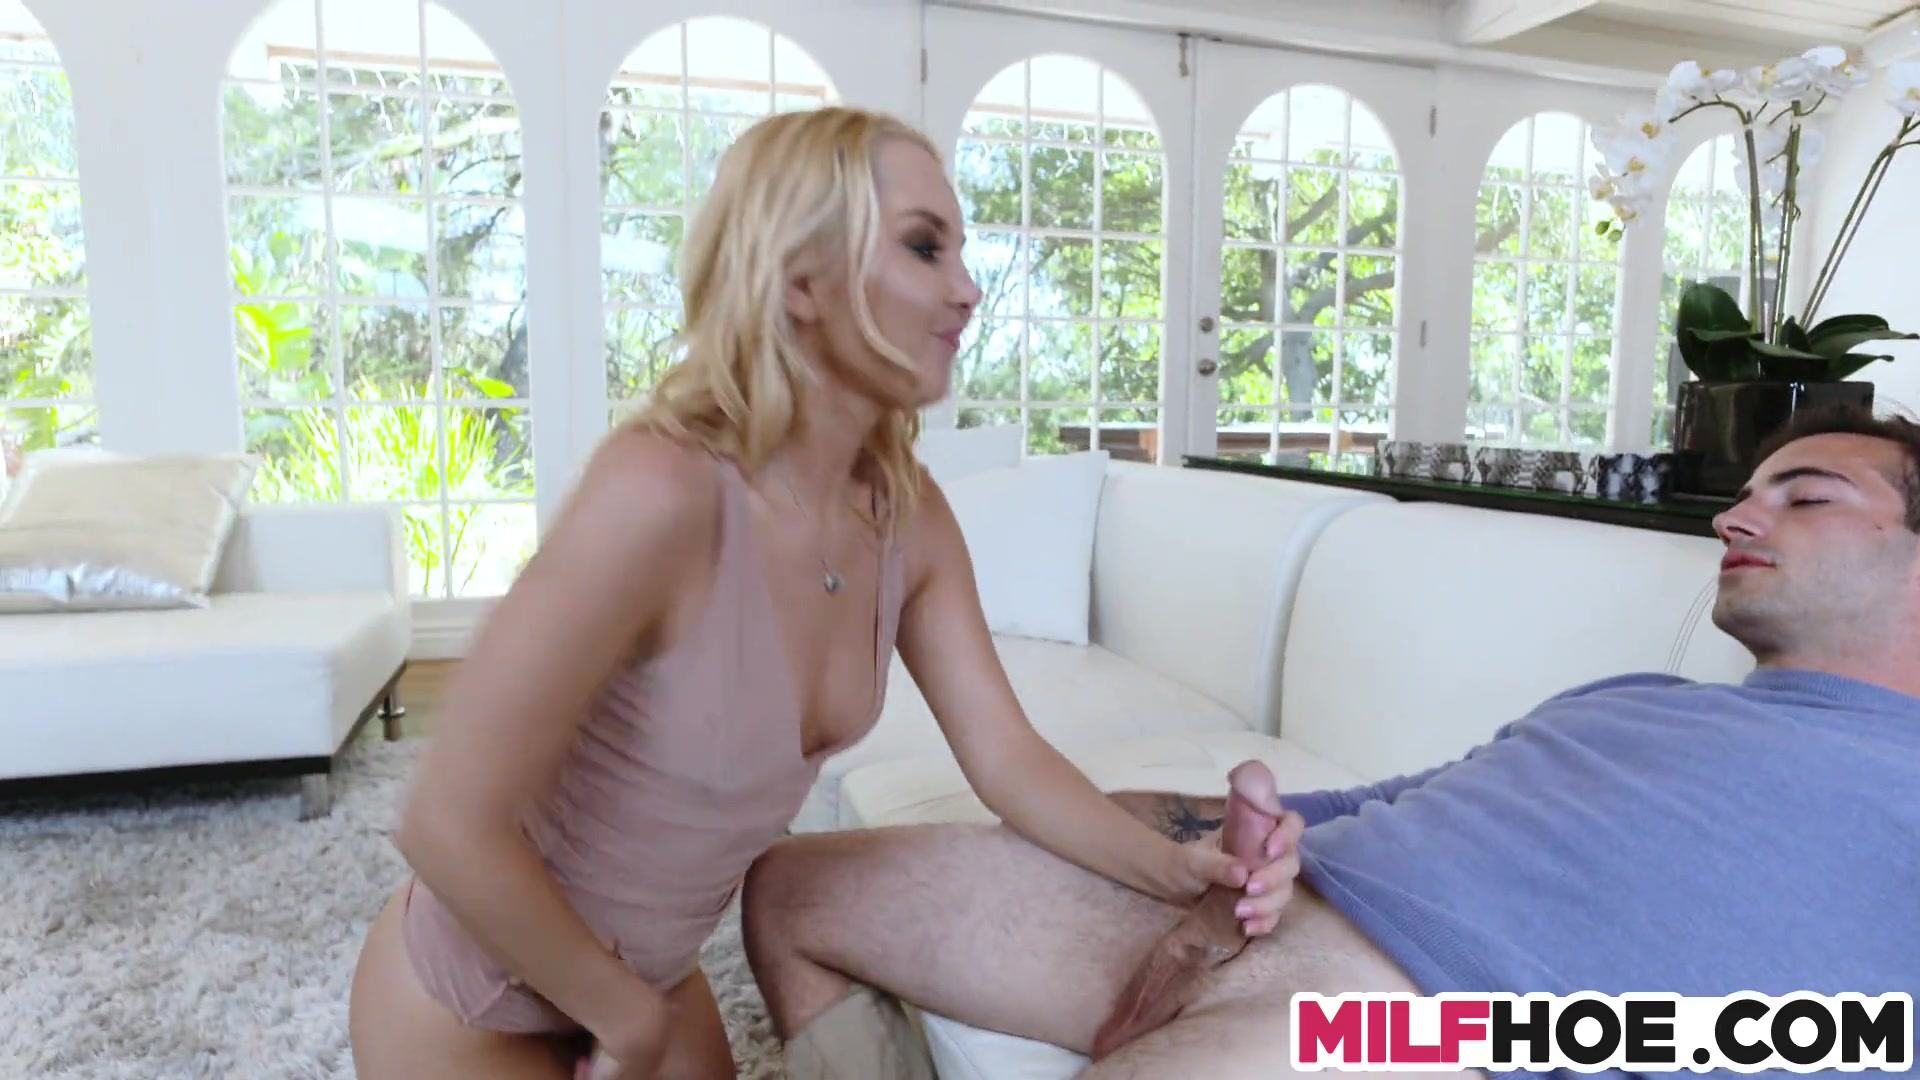 A dirty affair with stunning mom and bf 5